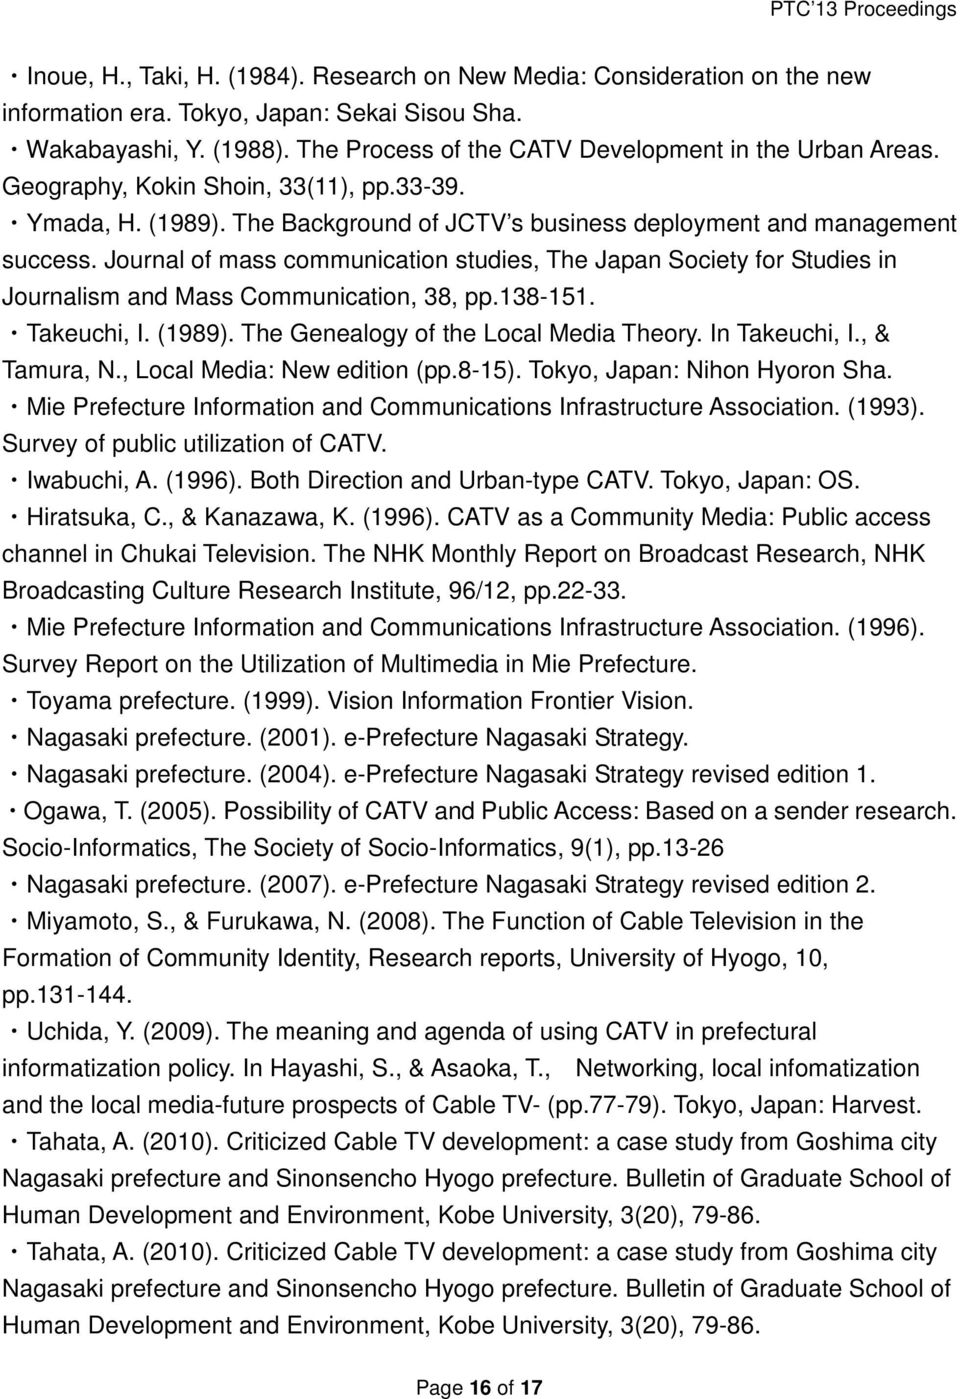 Journal of mass communication studies, The Japan Society for Studies in Journalism and Mass Communication, 38, pp.138-151. Takeuchi, I. (1989). The Genealogy of the Local Media Theory. In Takeuchi, I.